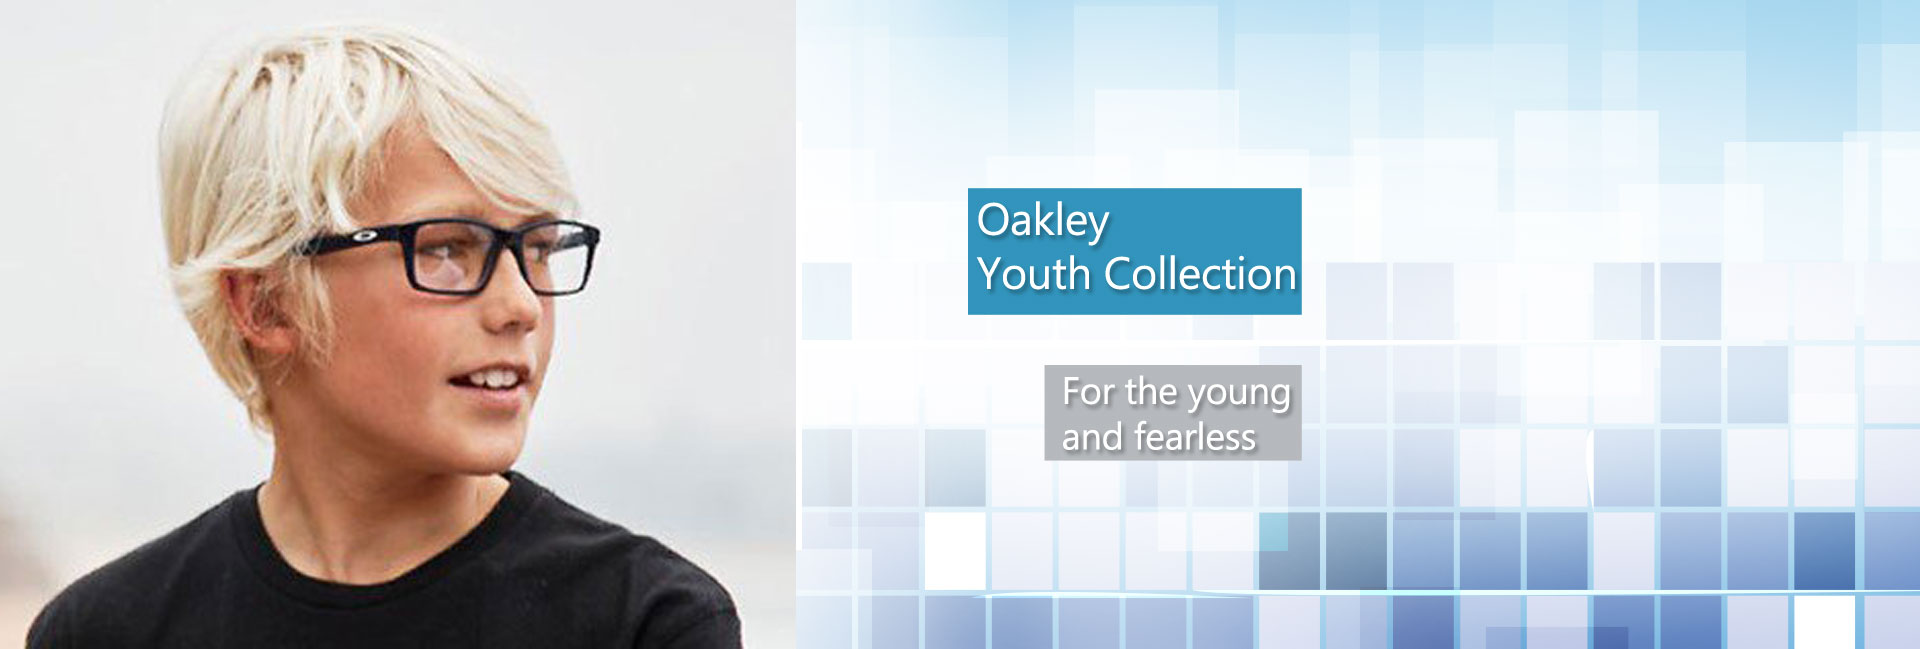 oakley-youth-collection